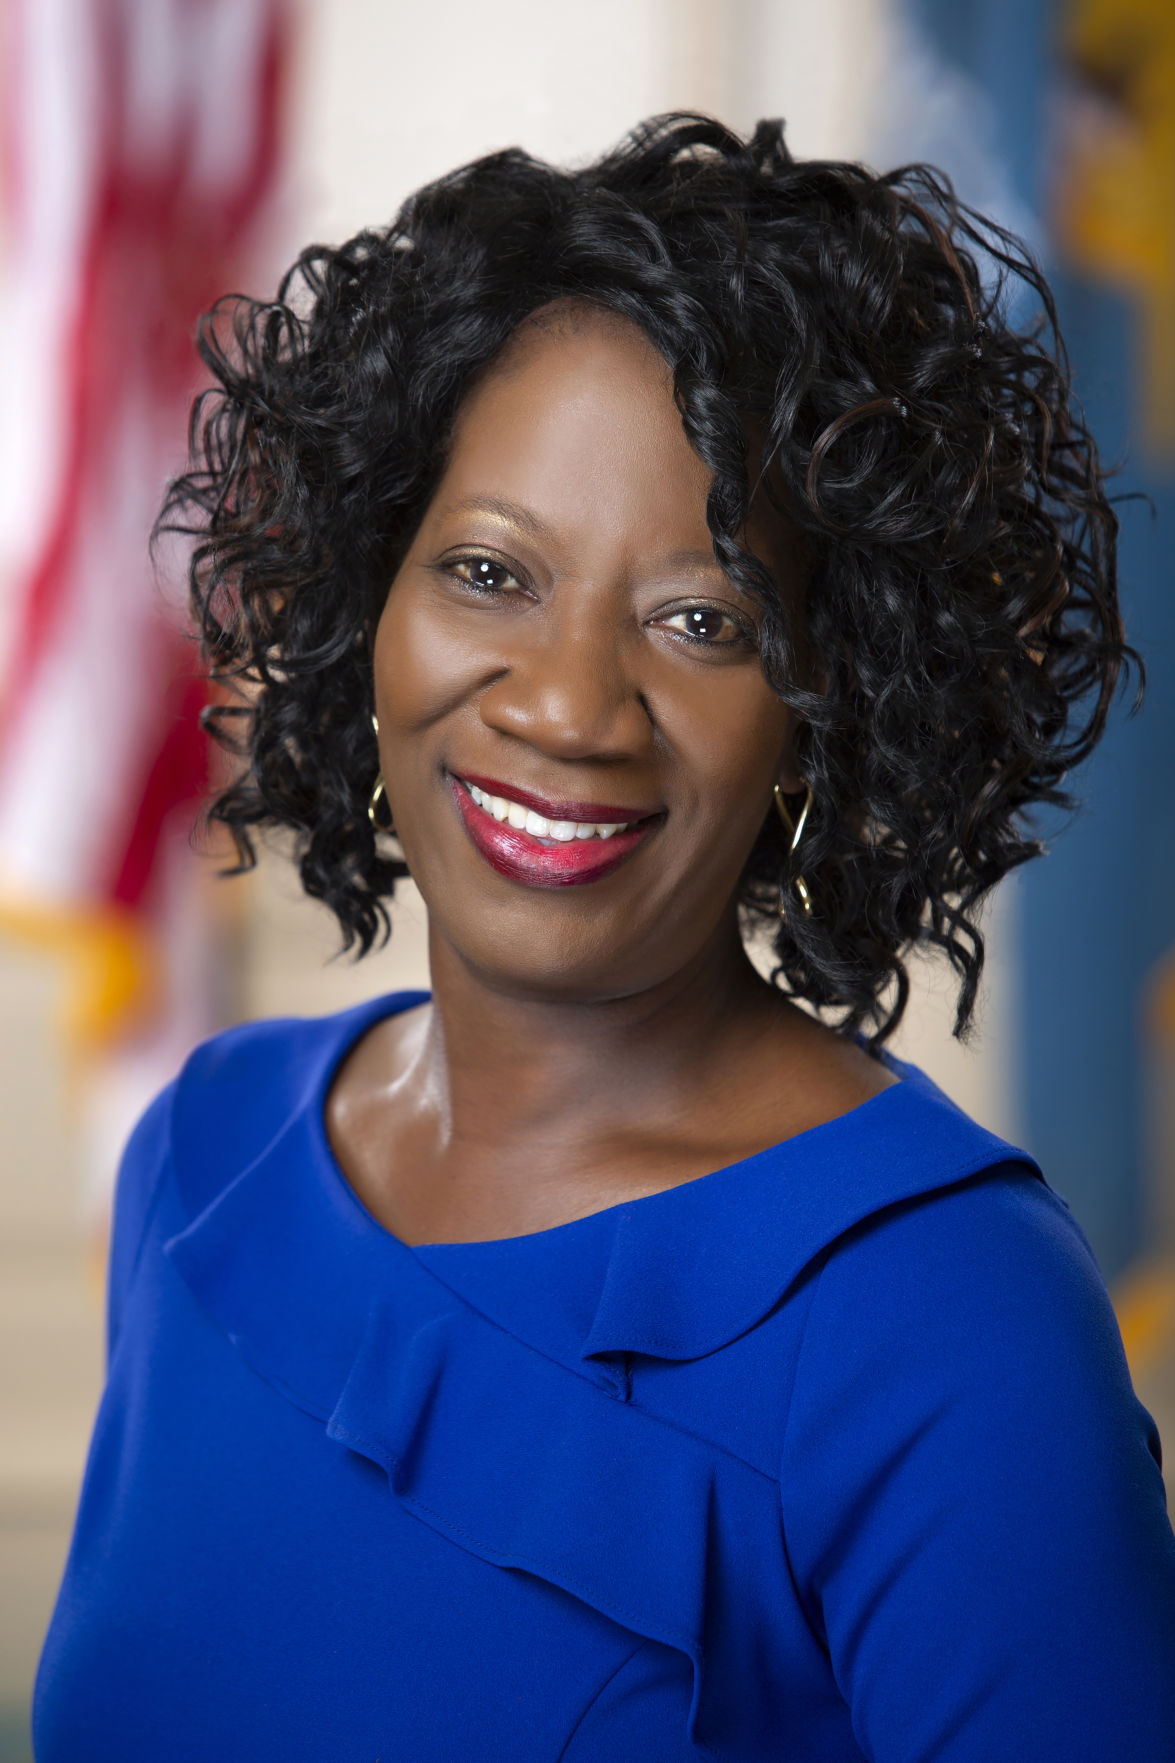 State Rep. Kendra Johnson